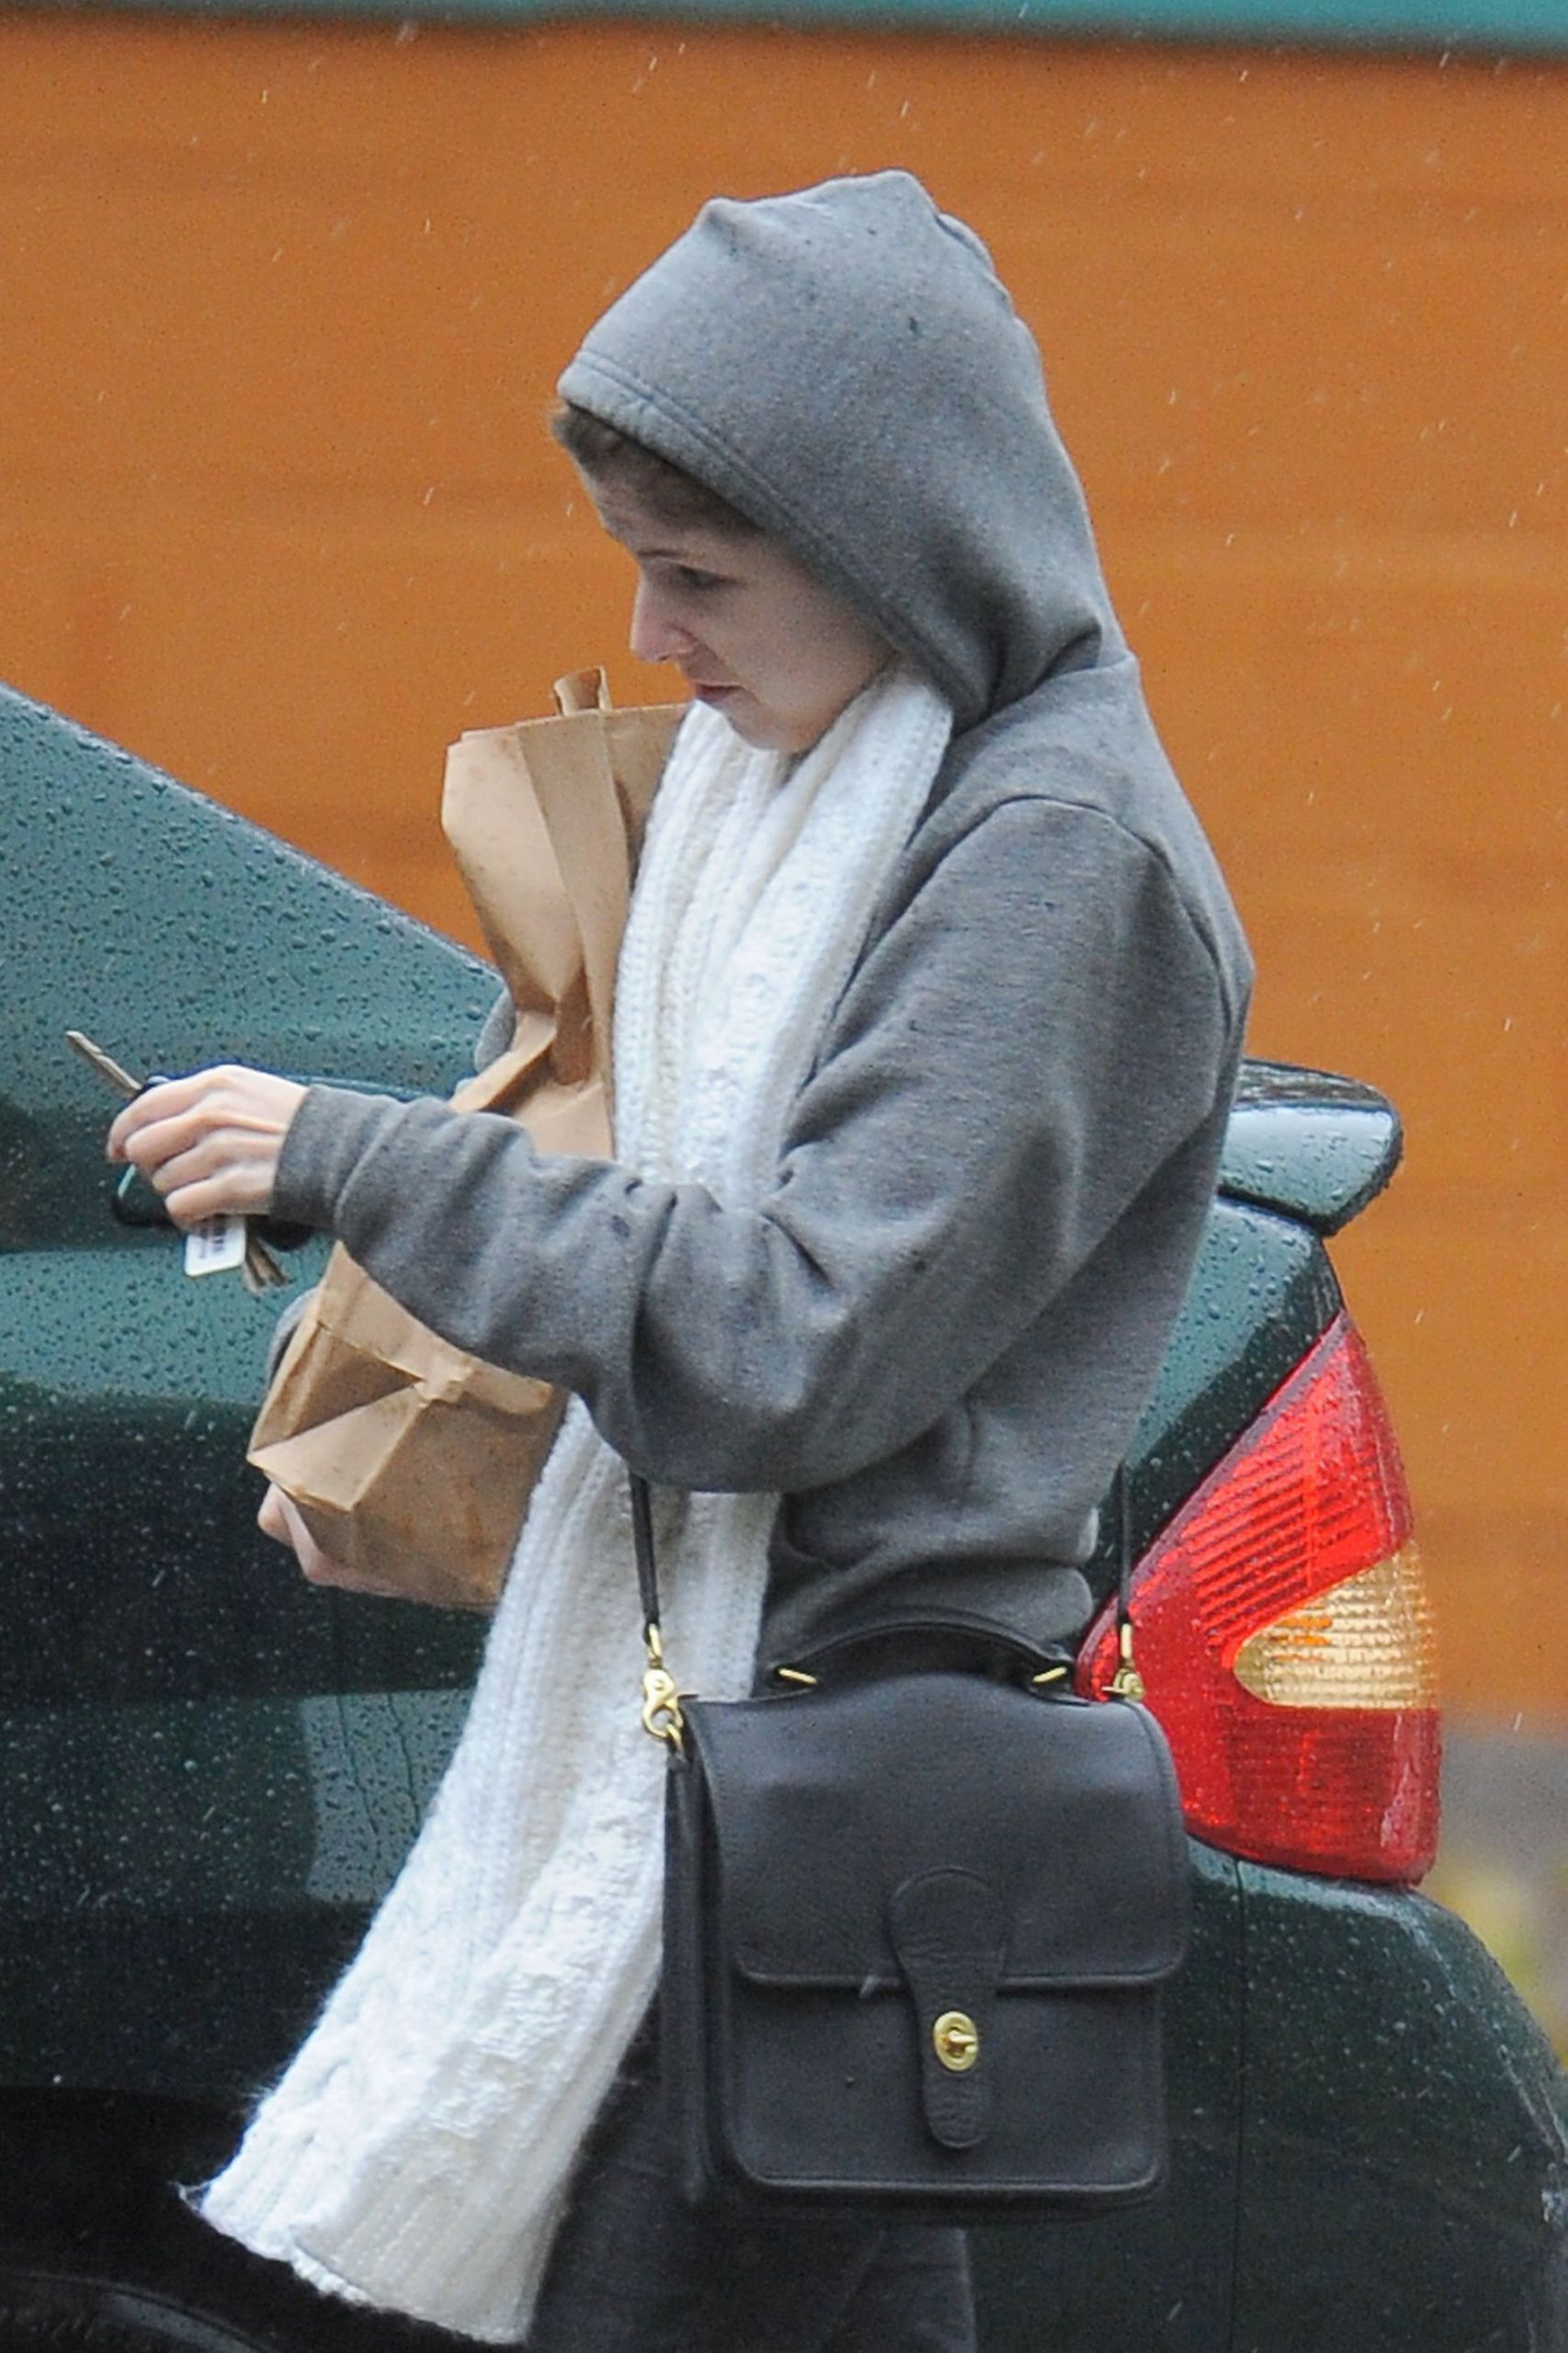 March 20th: At the Country Mart Market in Los Angeles